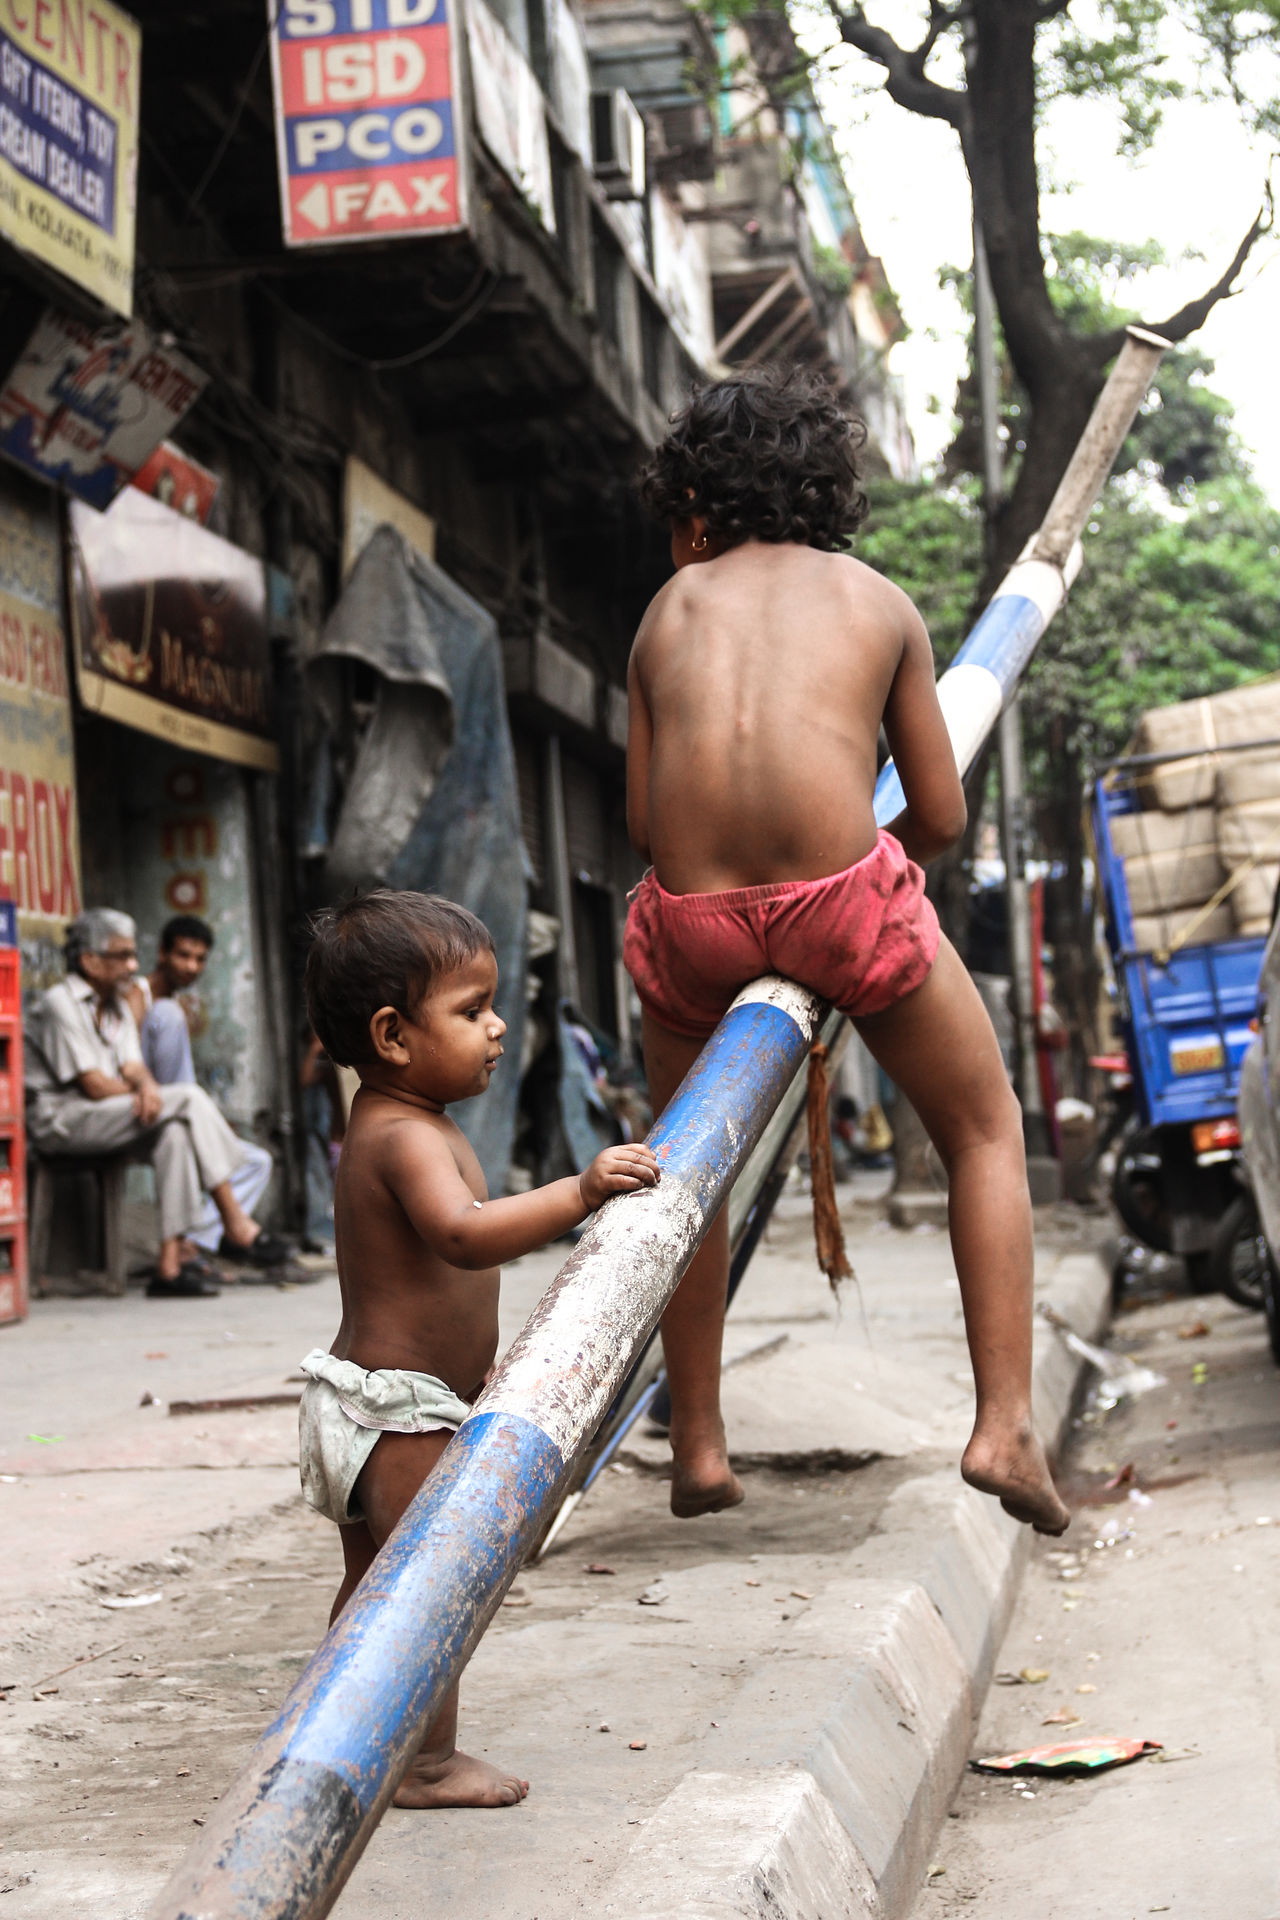 children playing Children Day Innocence Outdoors People Real People Rough Life Streets Two People The Photojournalist - 2017 EyeEm Awards The Street Photographer - 2017 EyeEm Awards